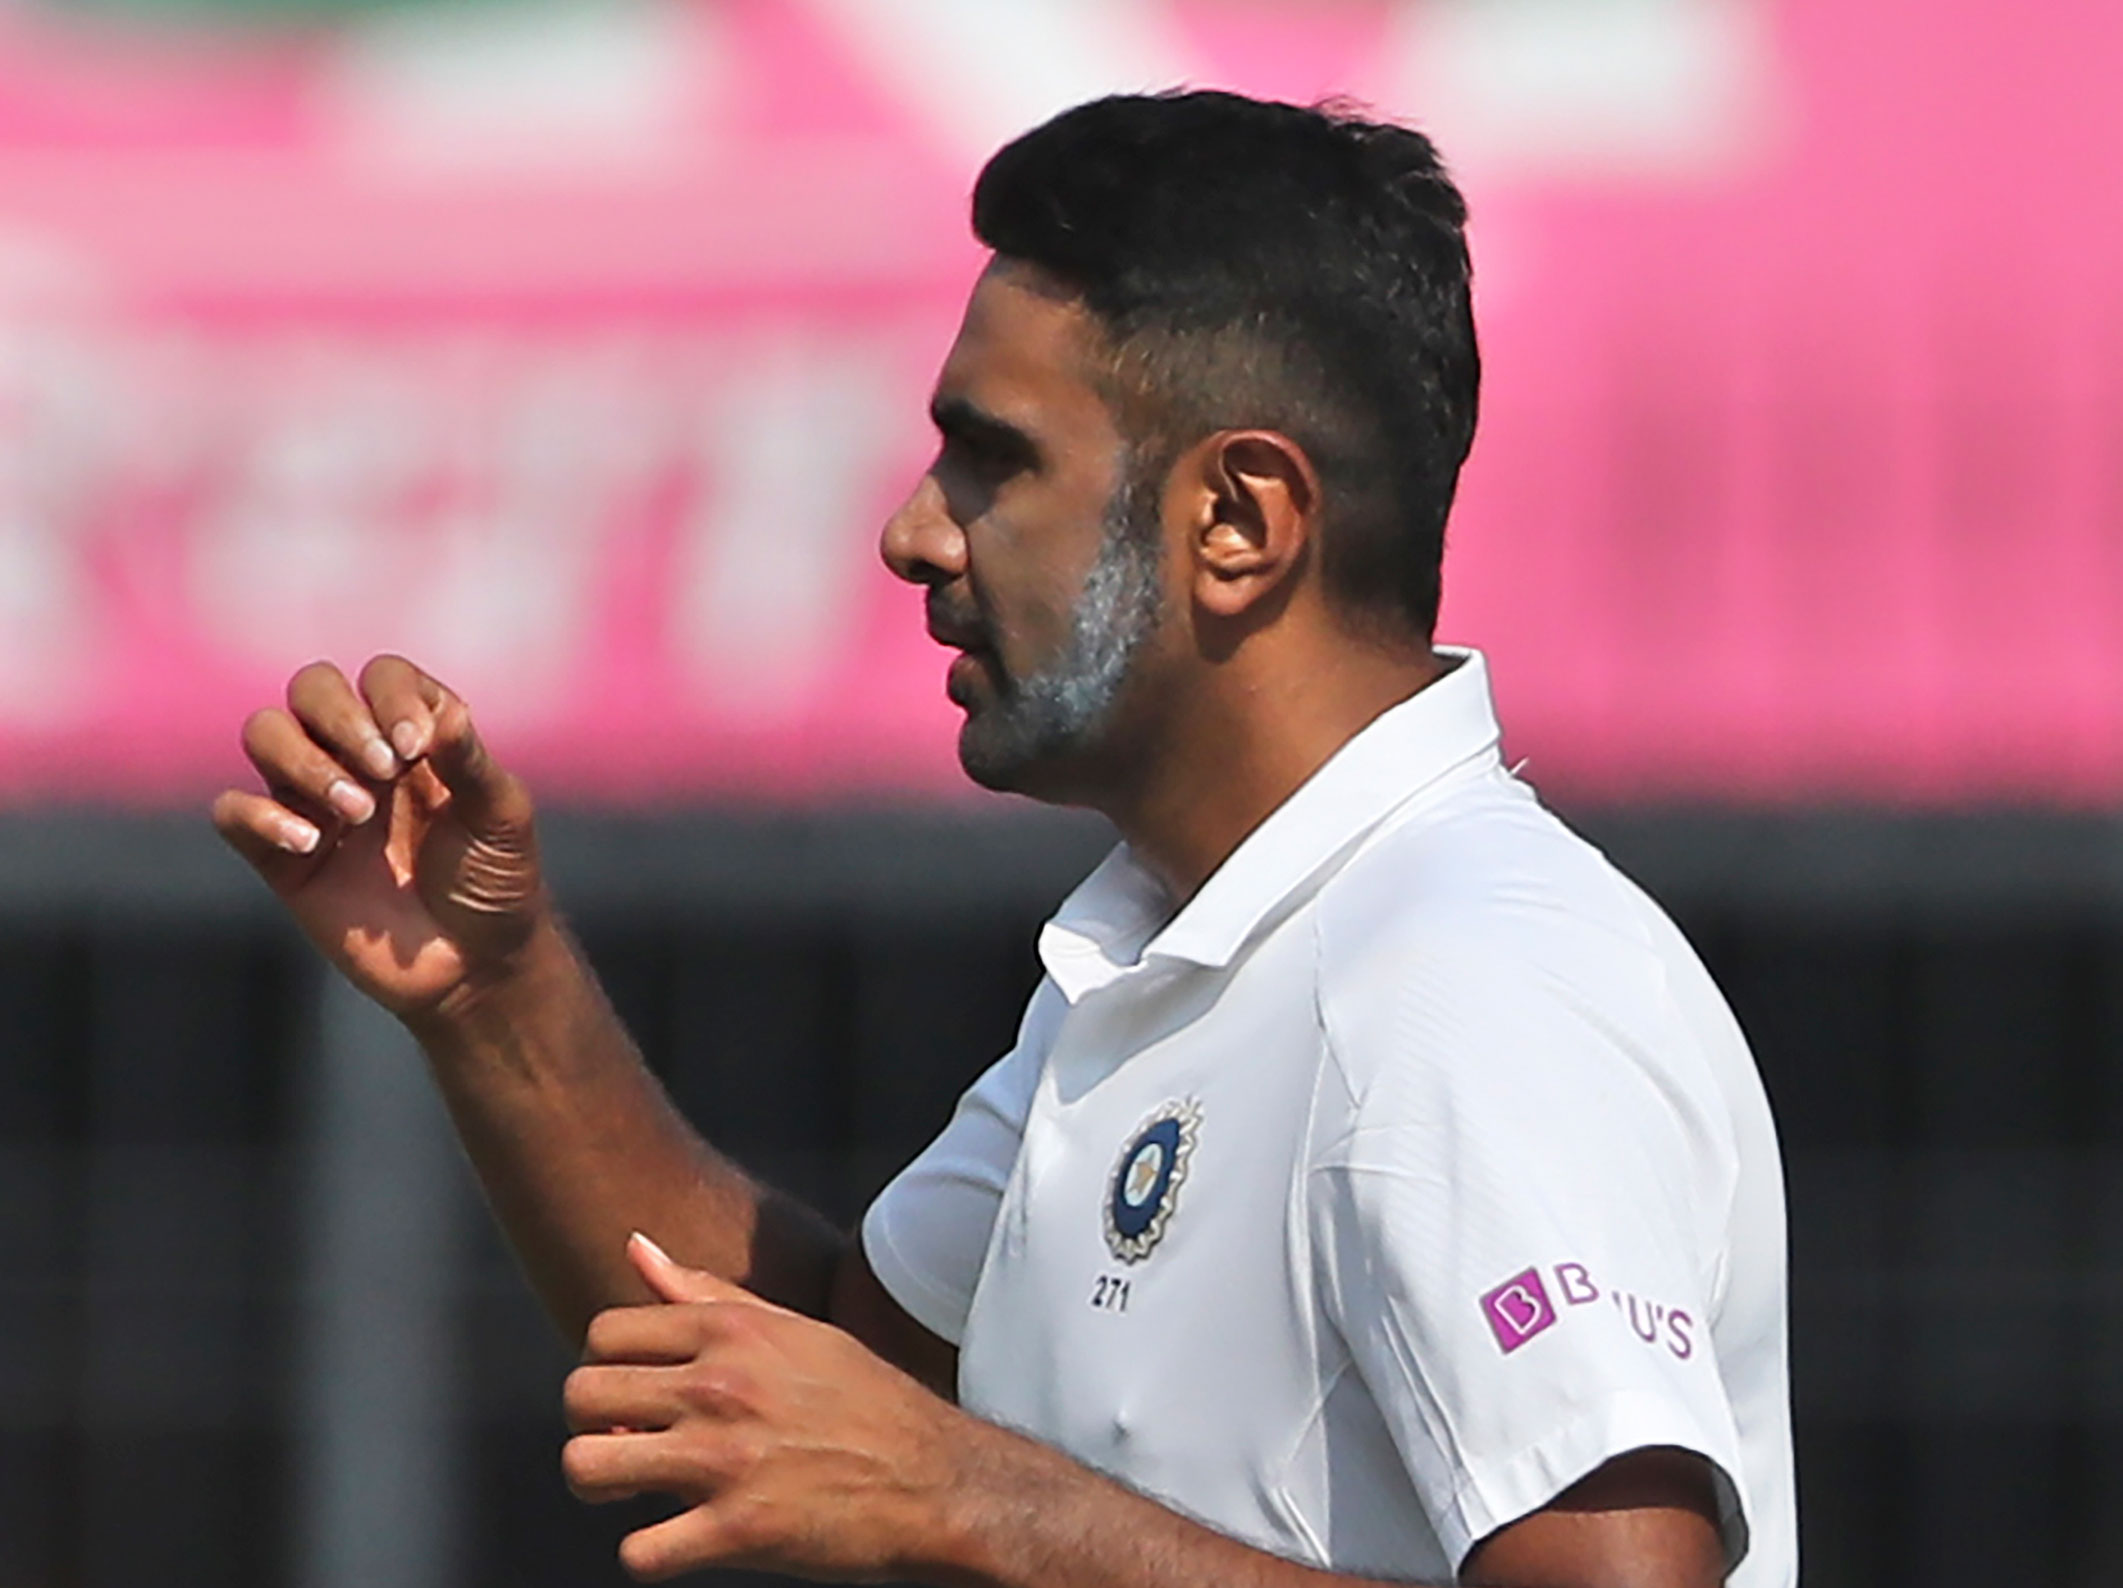 Ravichandran Ashwin celebrates the dismissal of Bangladesh's Mahmudullah during the first day of first test match between India and Bangladesh in Indore on Thursday.